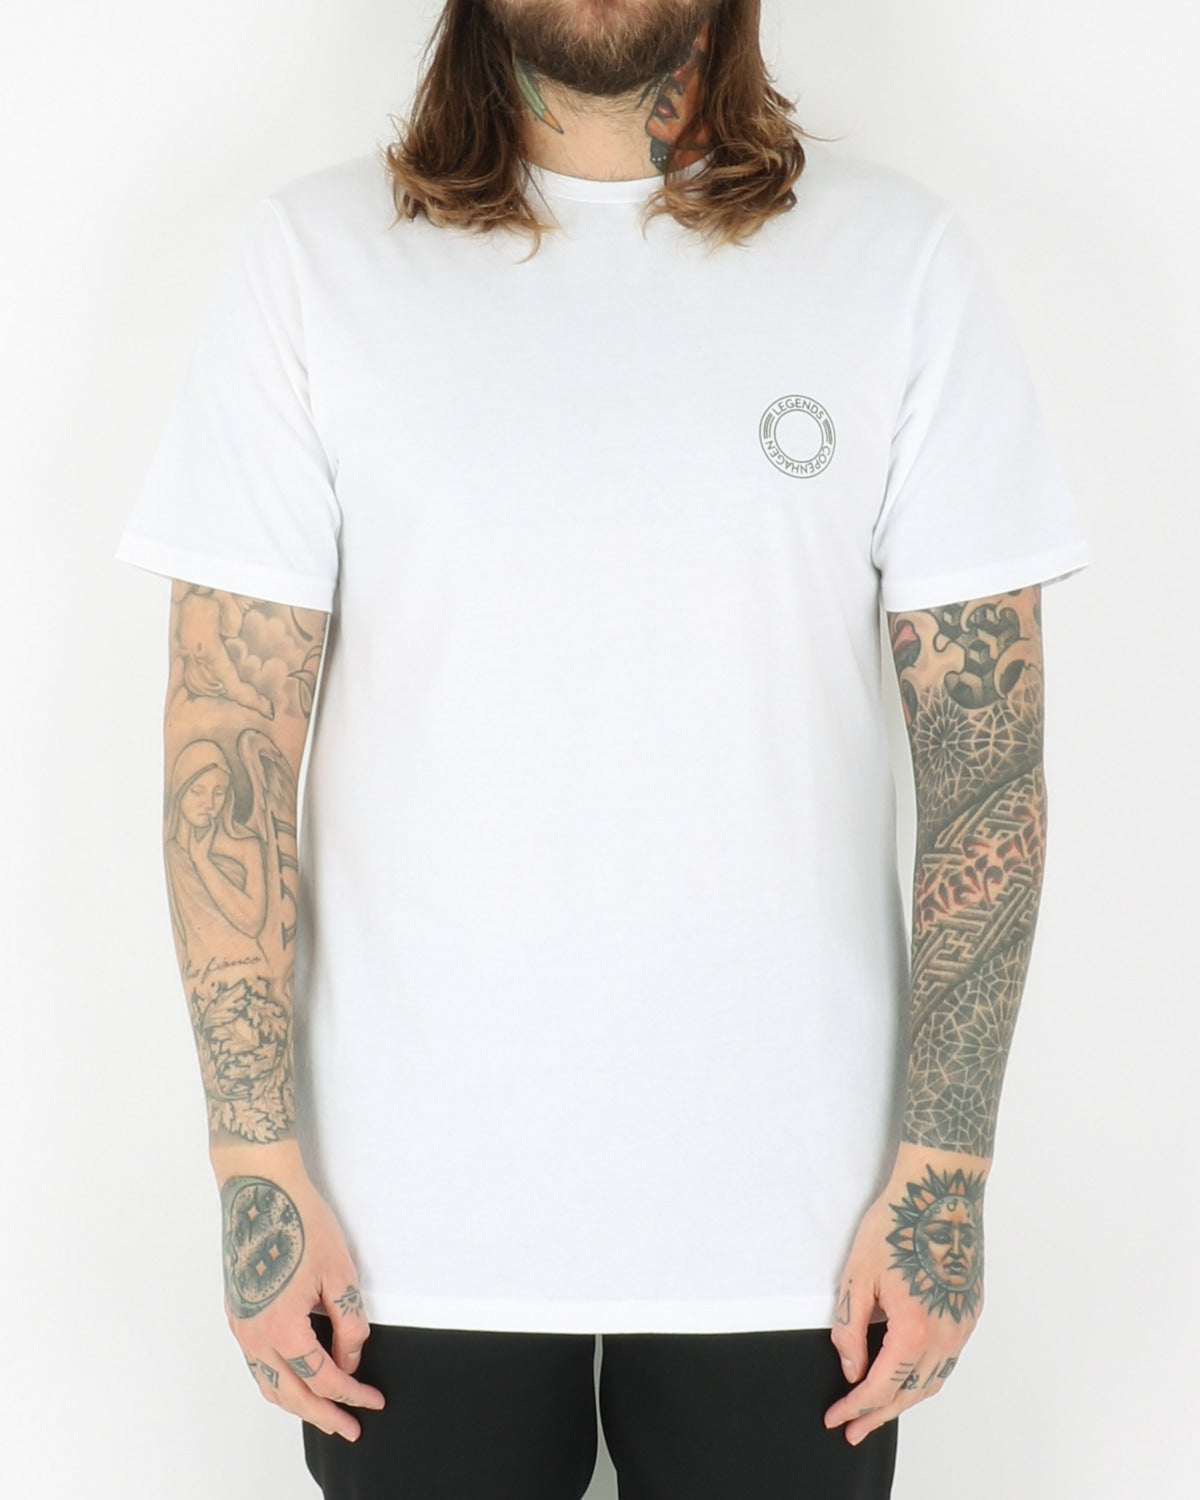 legends_chest coin t-shirt_white_view_1_3